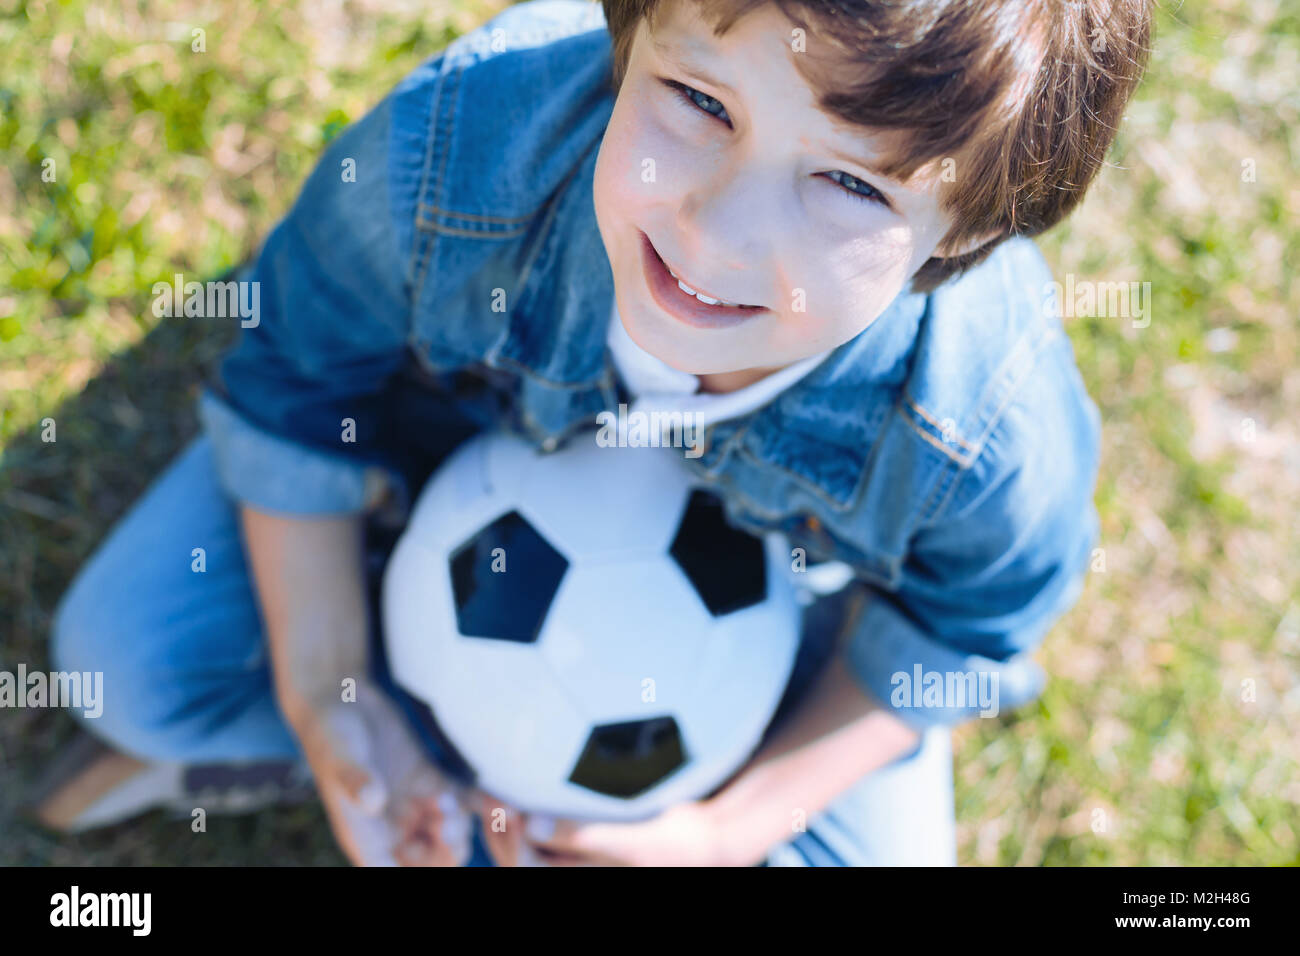 Cute boy with ball smiling après playing soccer Photo Stock